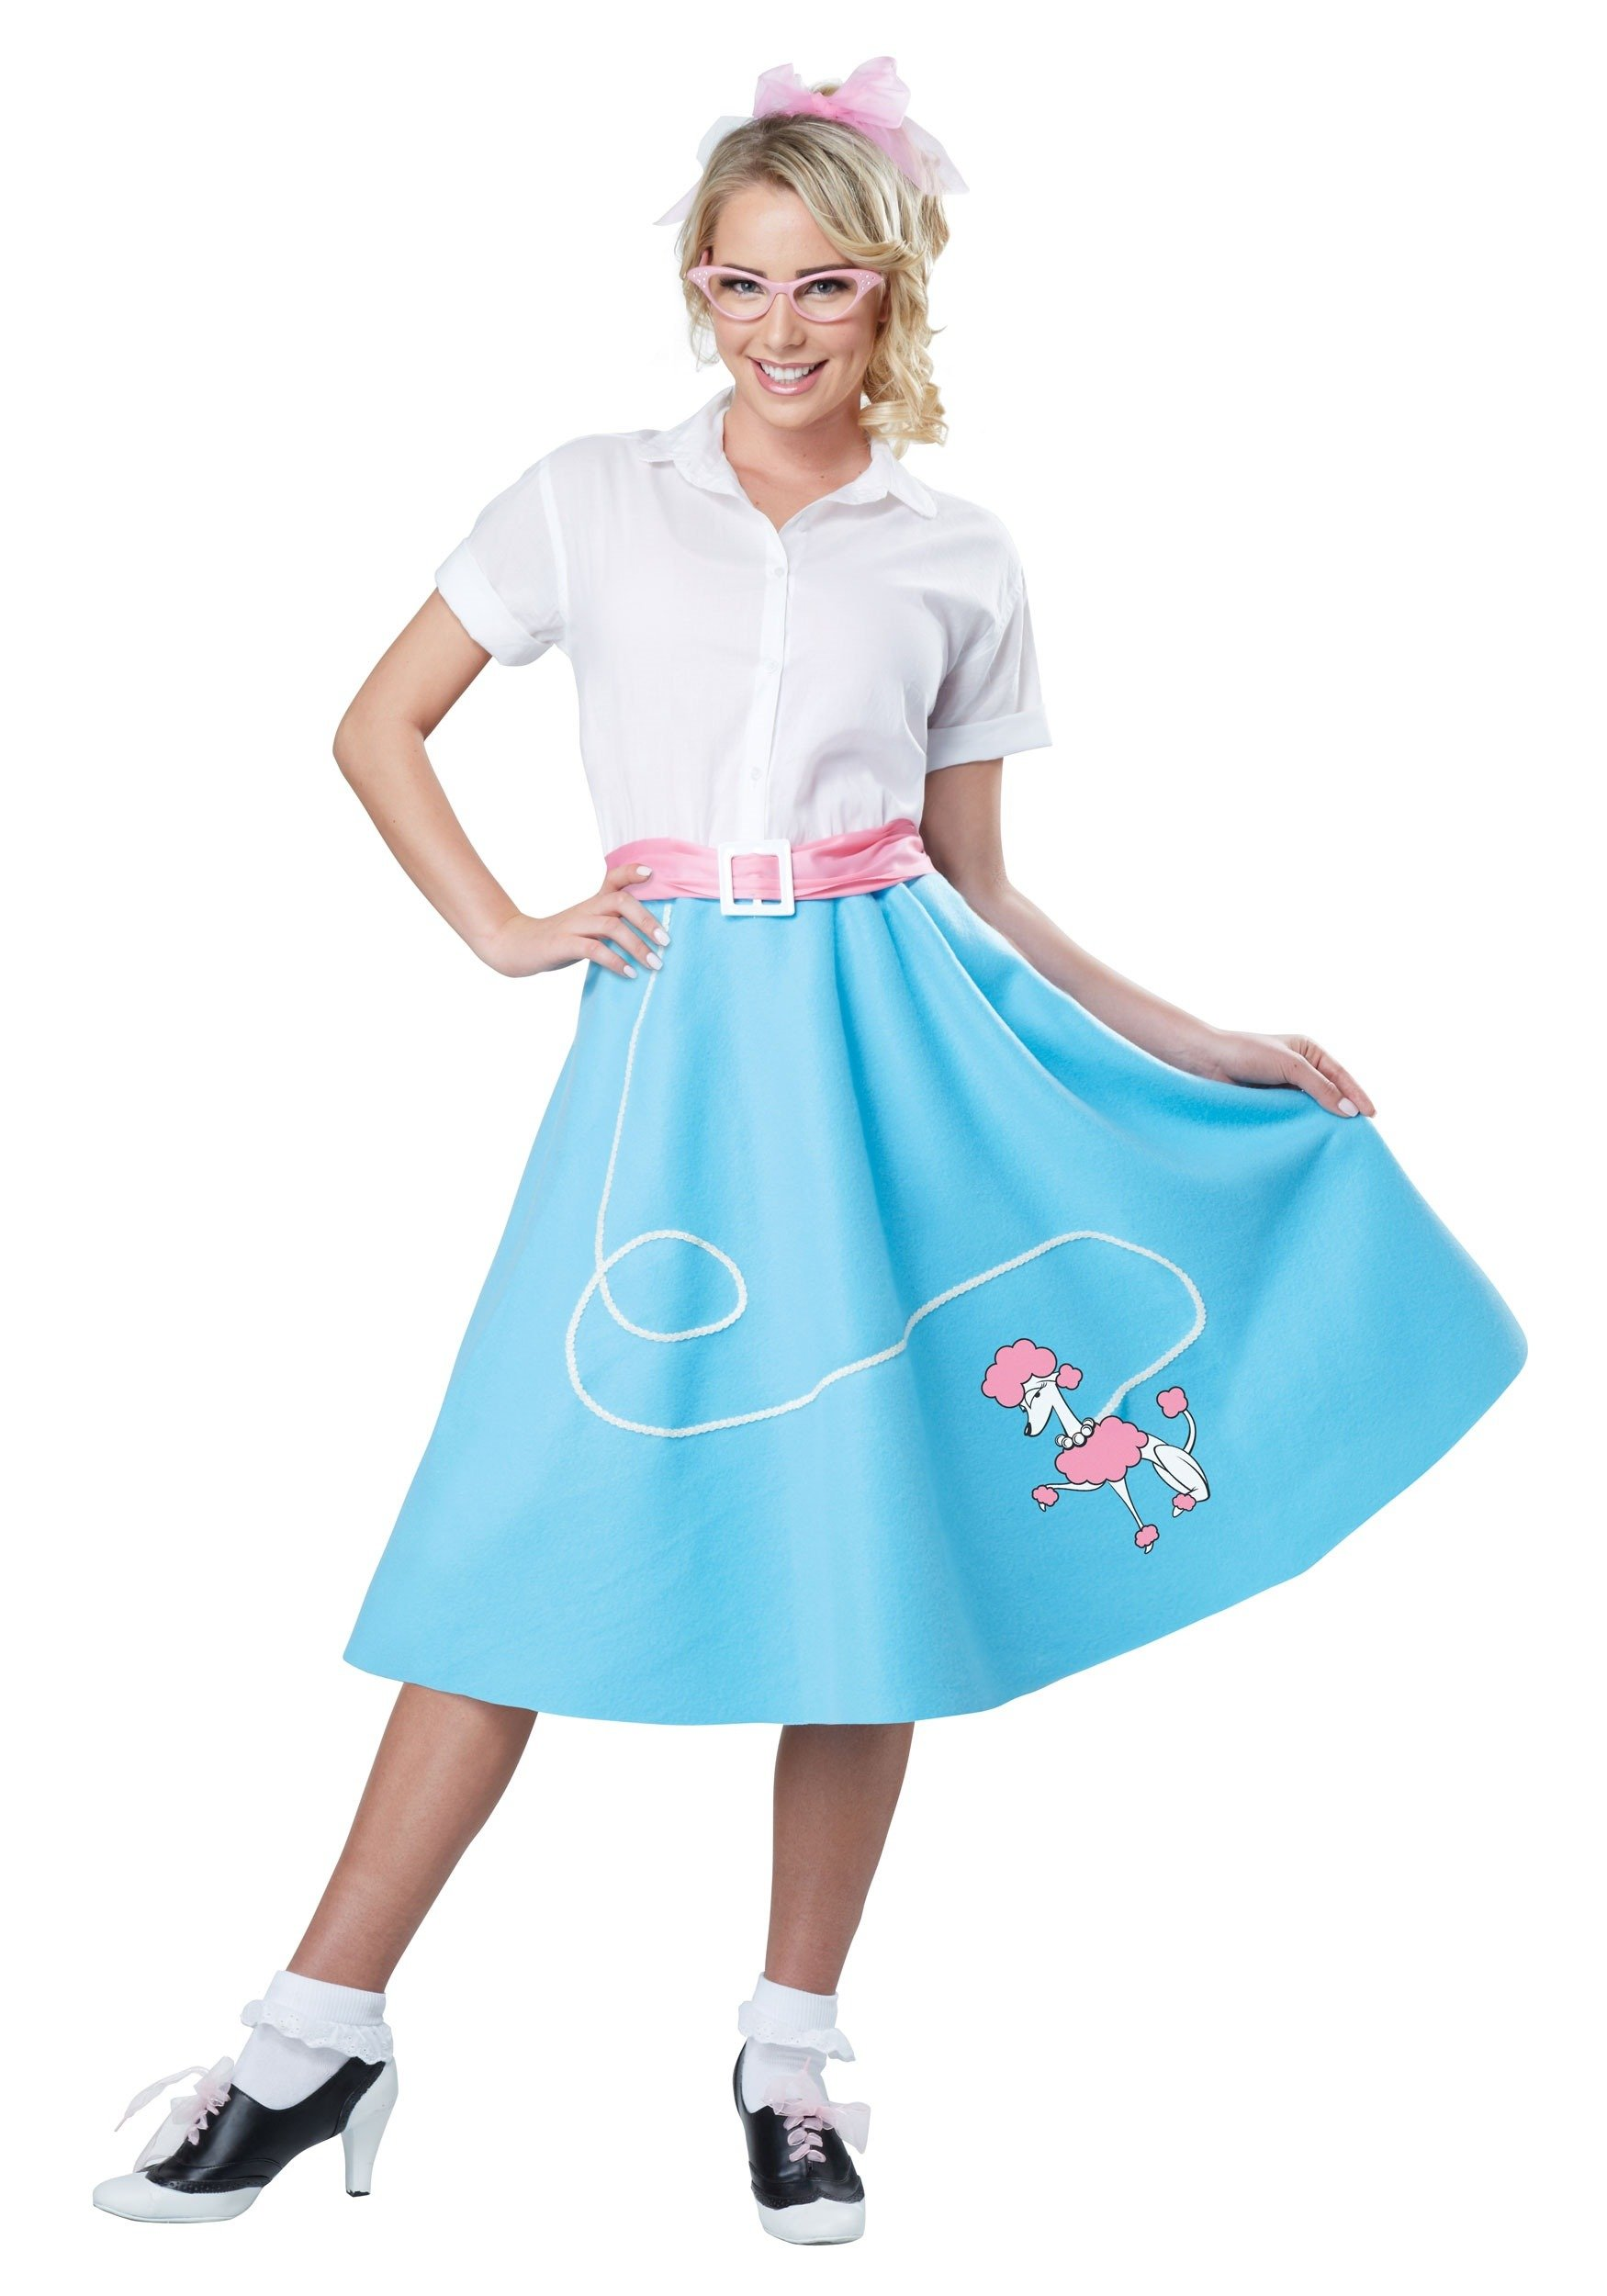 California Costumes Women's 50'S Poodle Skirt Adult Woman Costume, Blue, Extra Small